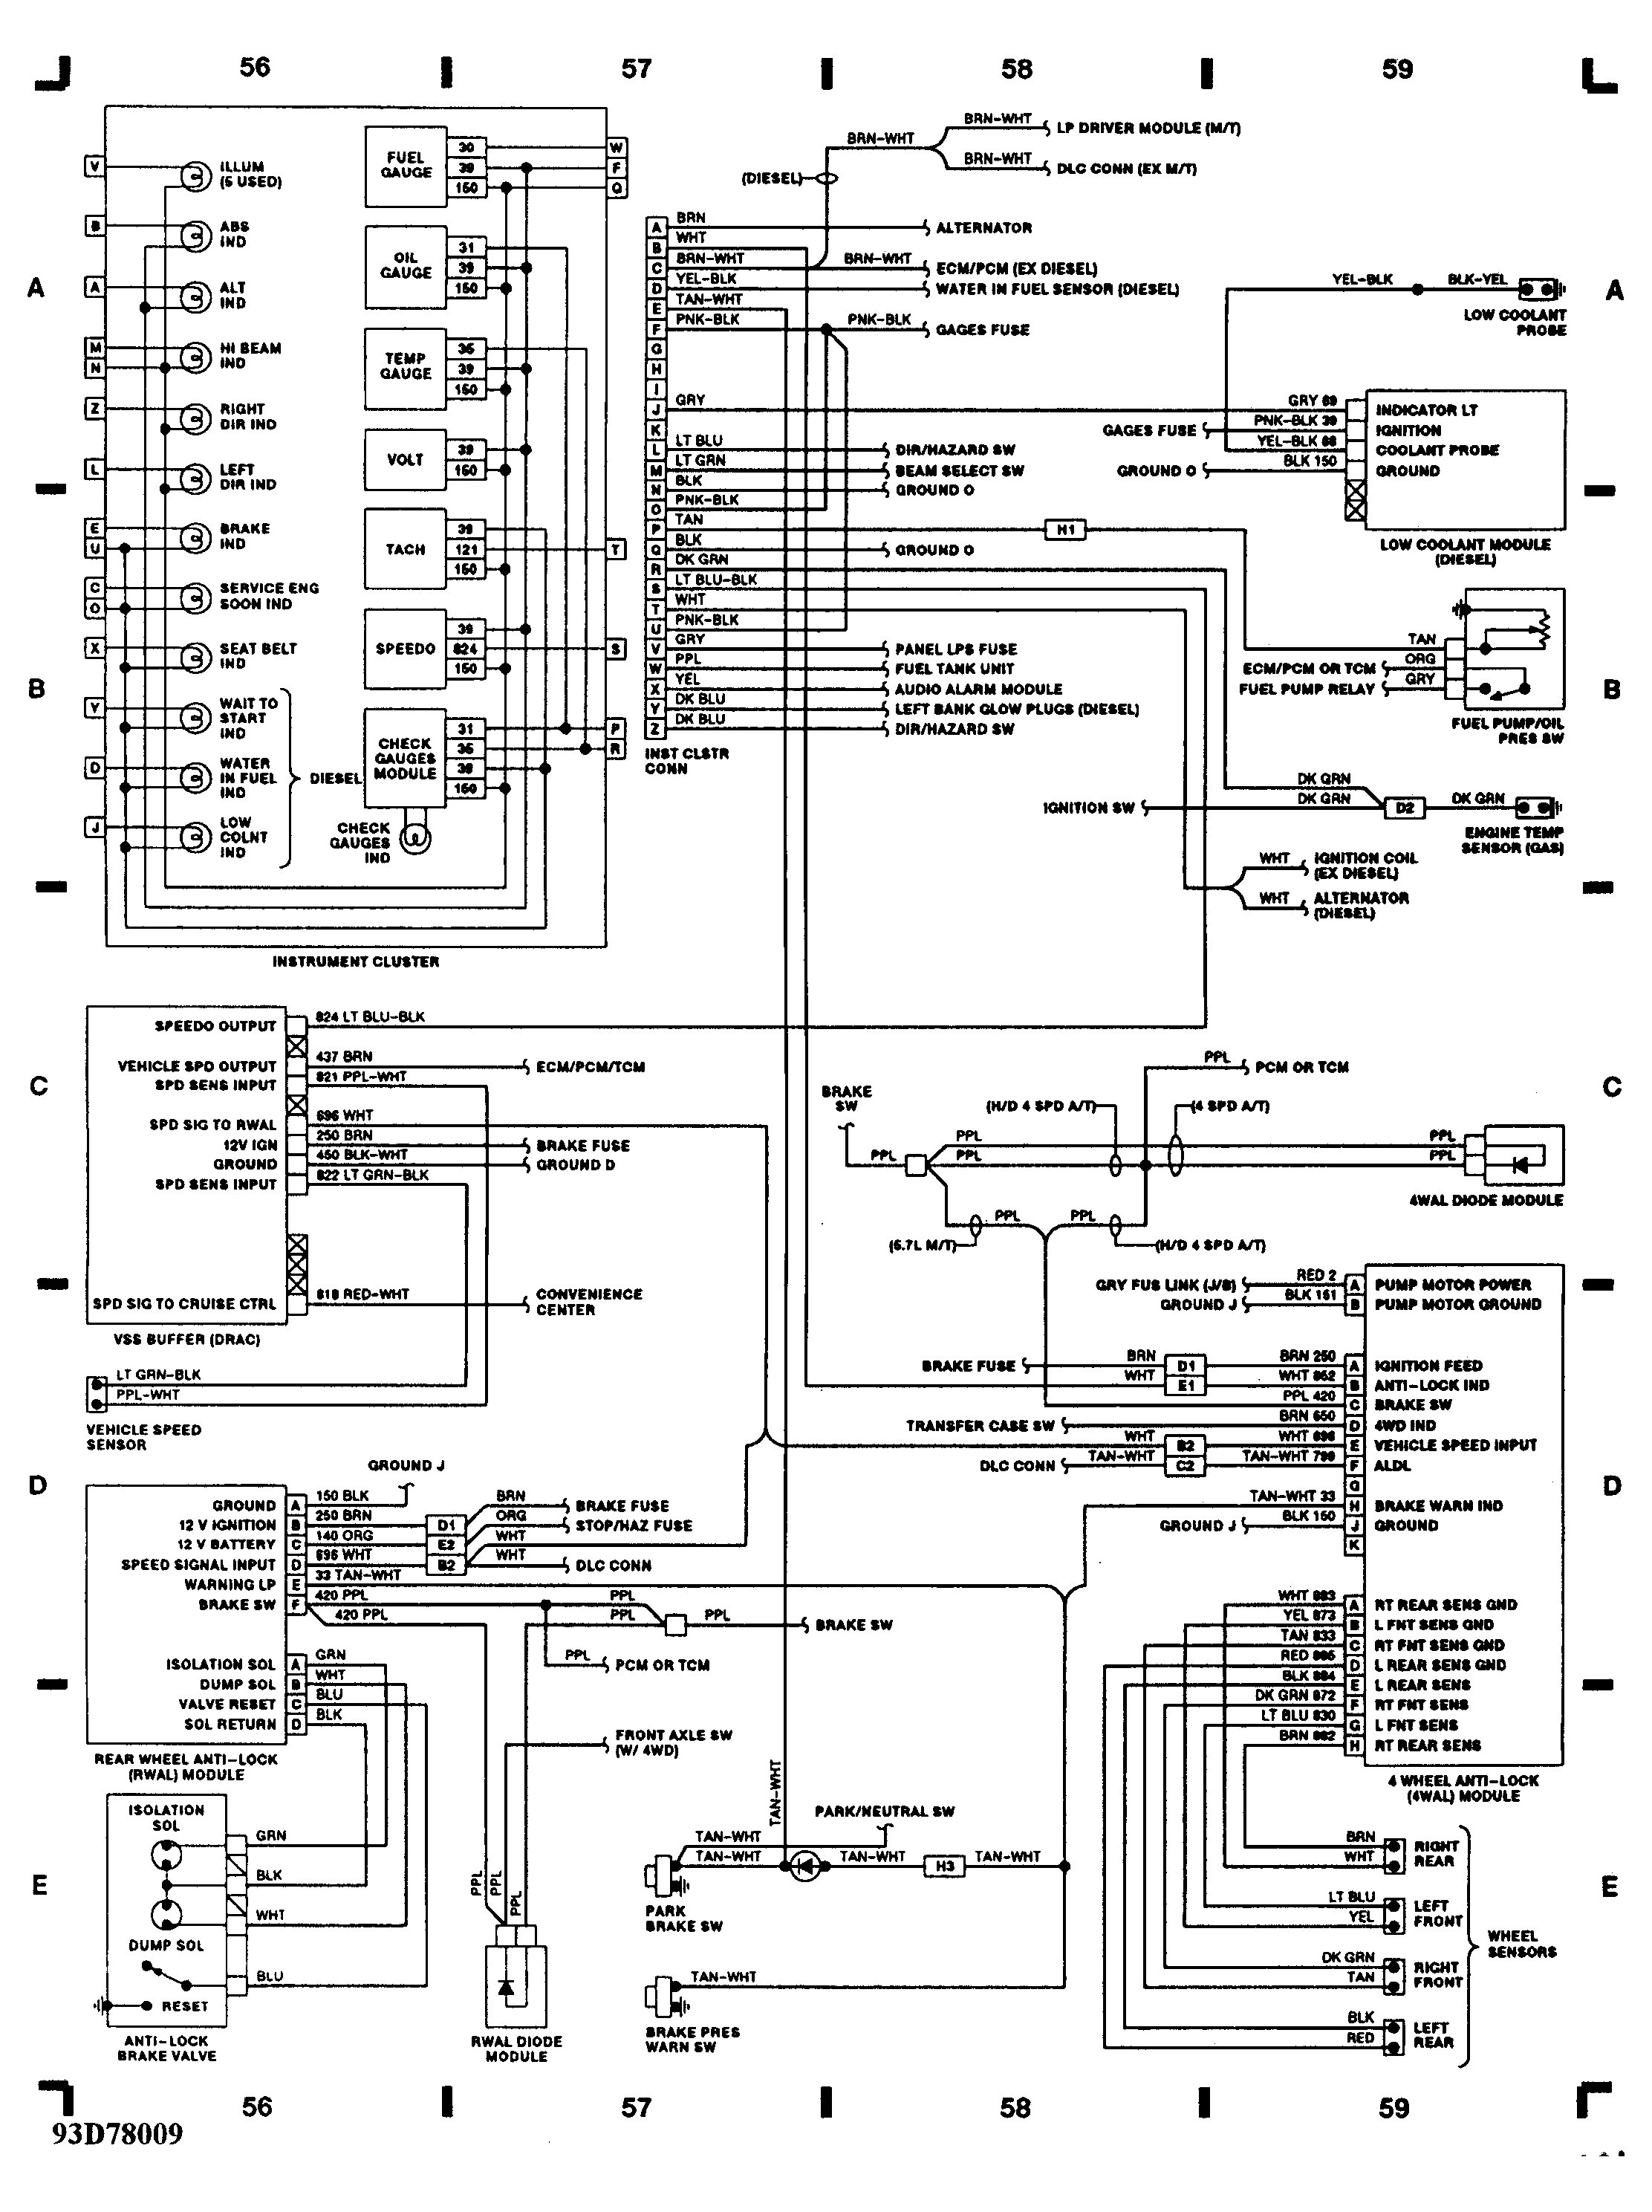 Toyota 3 3l Engine Diagram Wiring Data Schema 2002 Chrysler Voyager V6 Schematics Diagrams U2022 Rh Seniorlivinguniversity Co 2008 33l